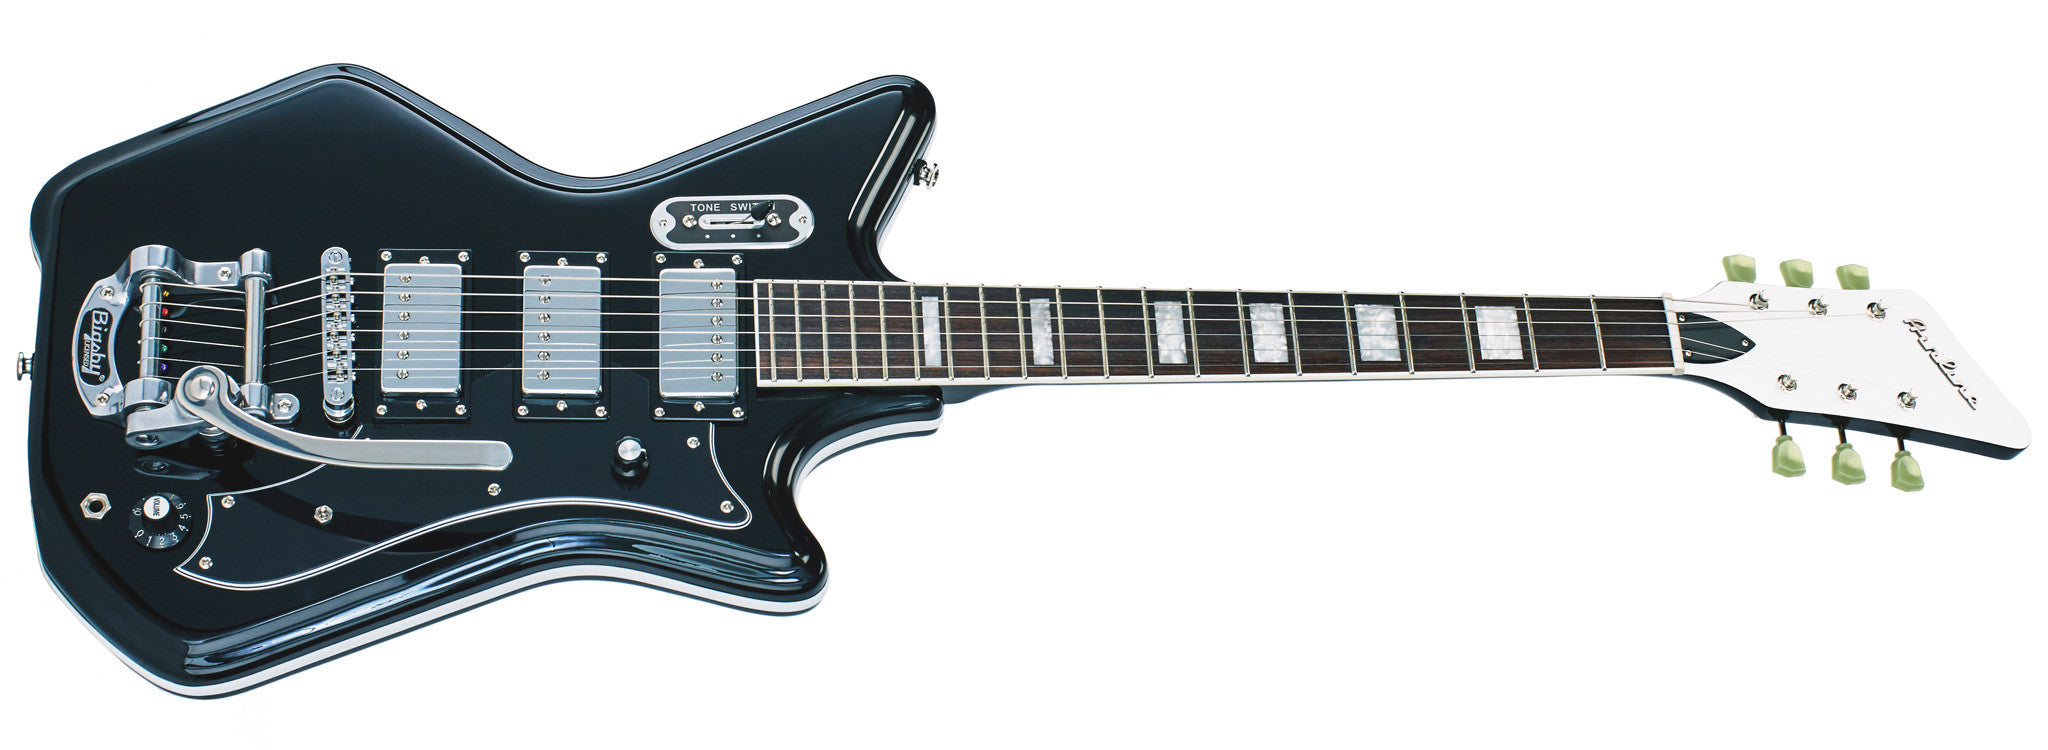 10 Airline Guitars That'll Inspire You – Eastwood Guitars